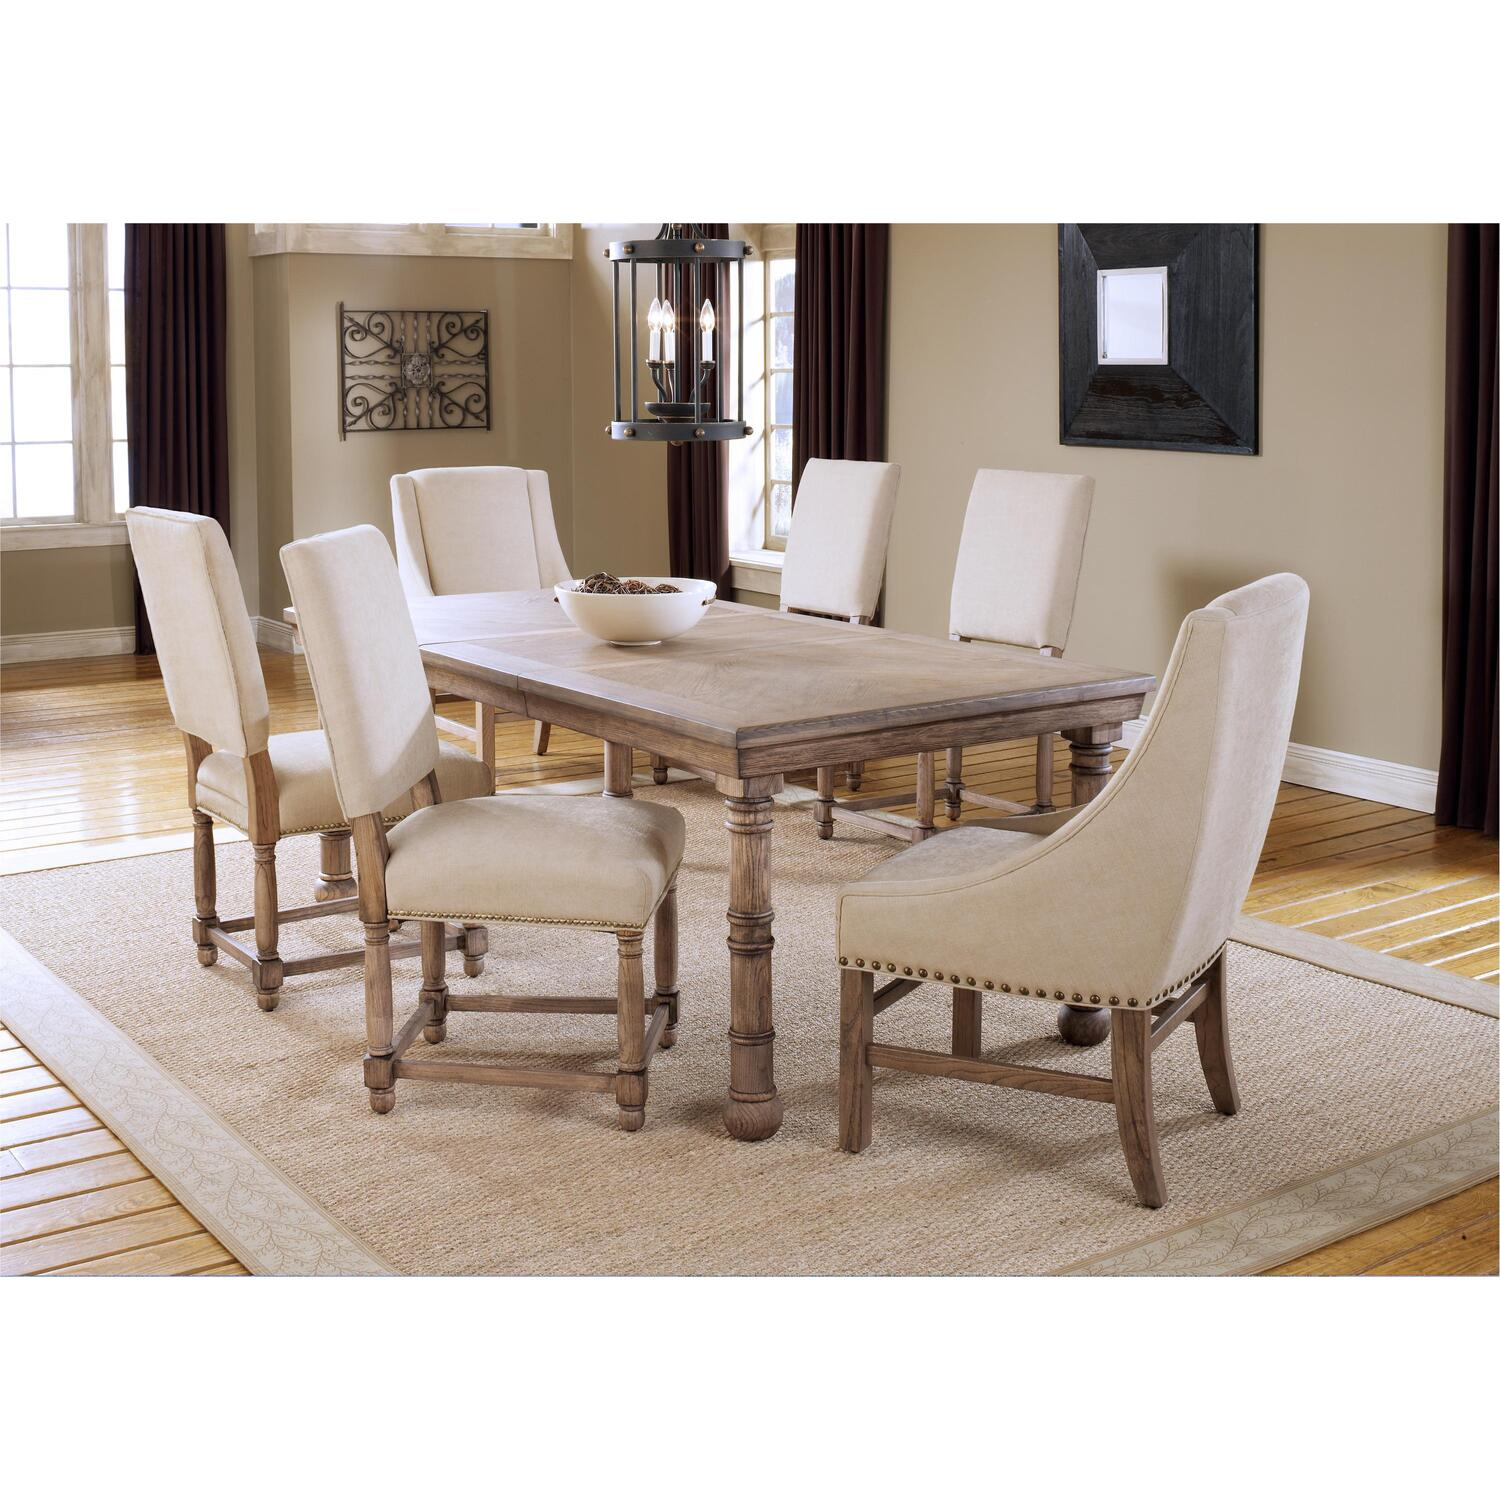 Hillsdale Furniture Hartland 7 Piece Dining Set - Table, 4 ...